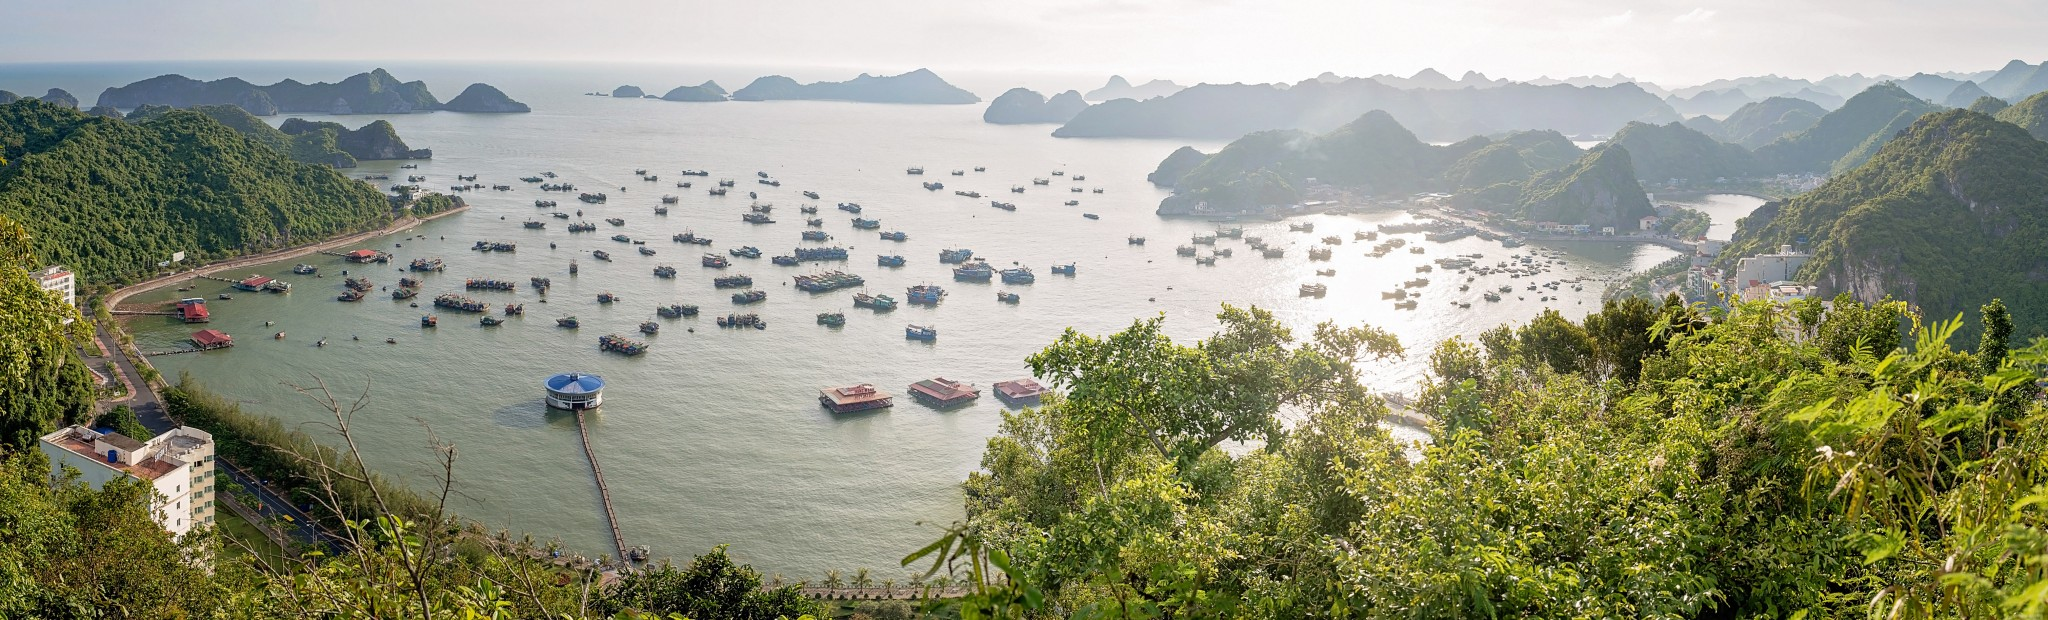 View of the bay in front of Cat Ba